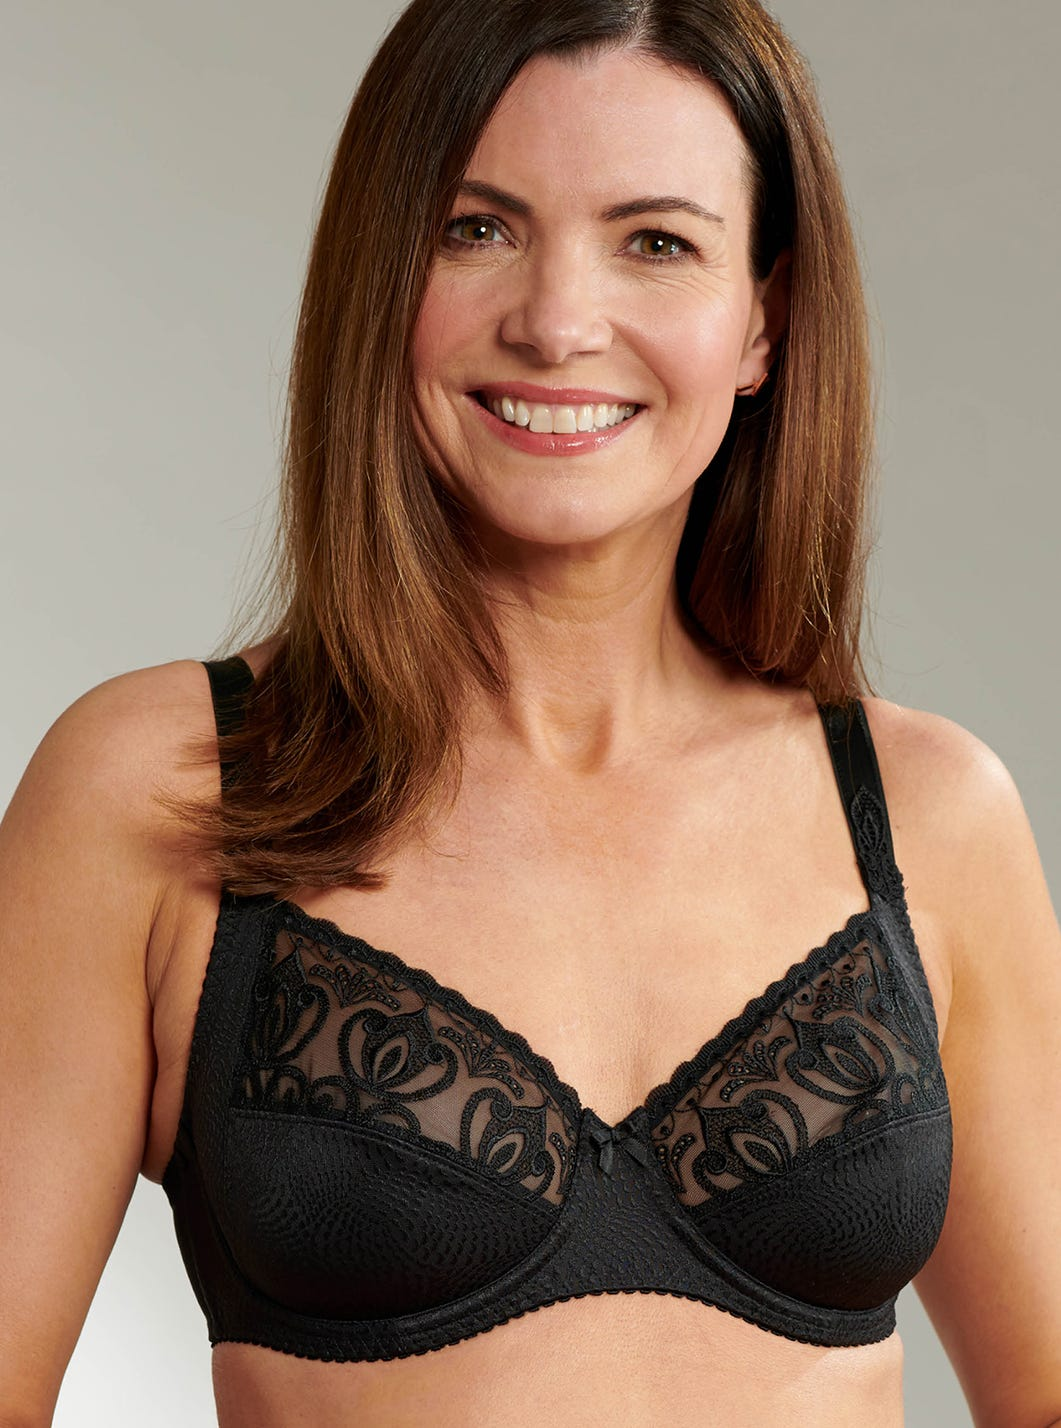 Luxurious Lace Support Bra by Felina